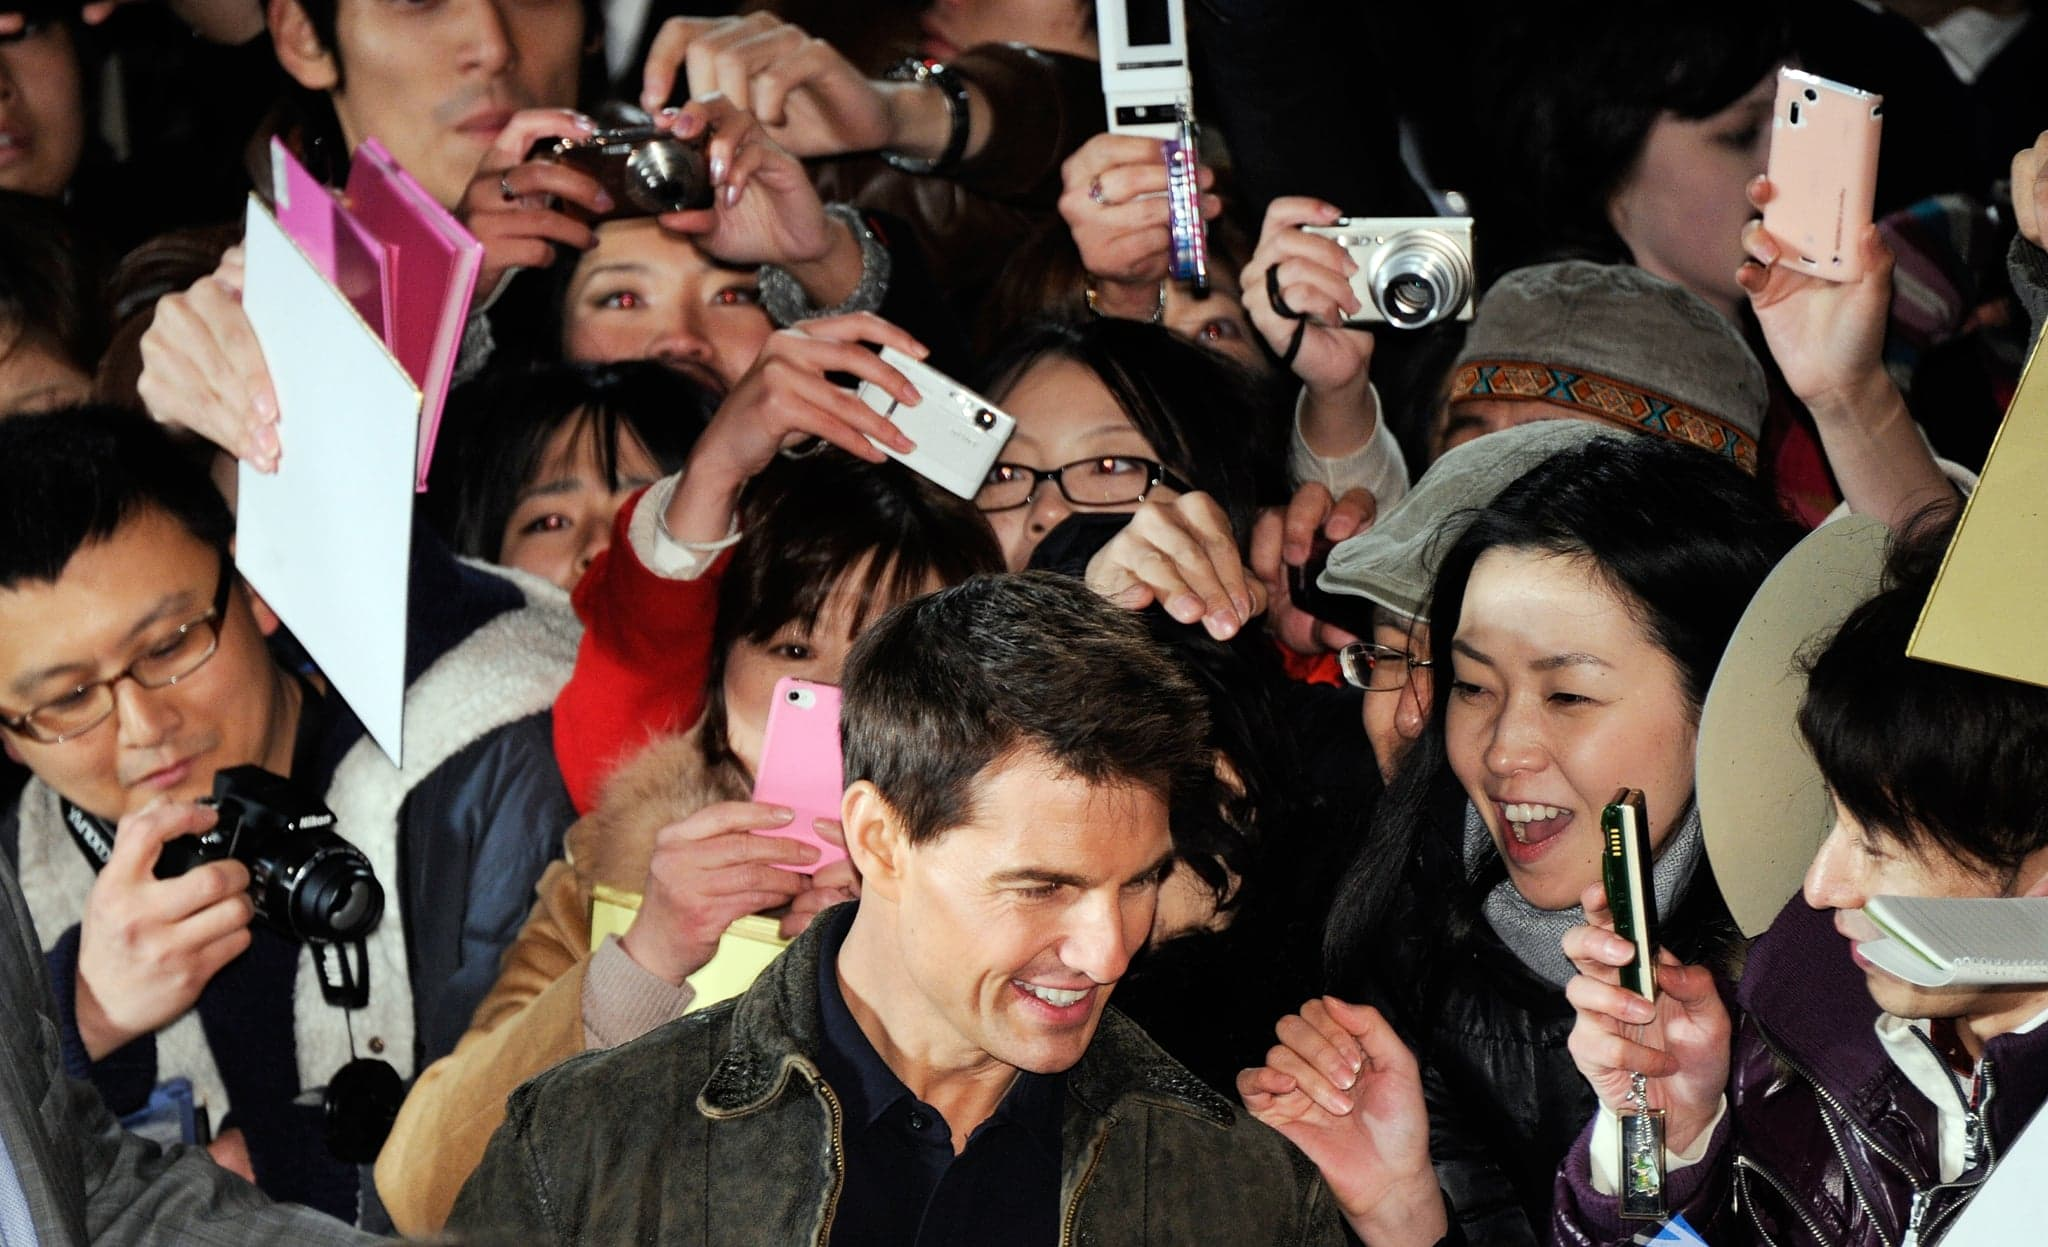 What Makes Tom Cruise Irresistible? | Cruise with fans in Japan